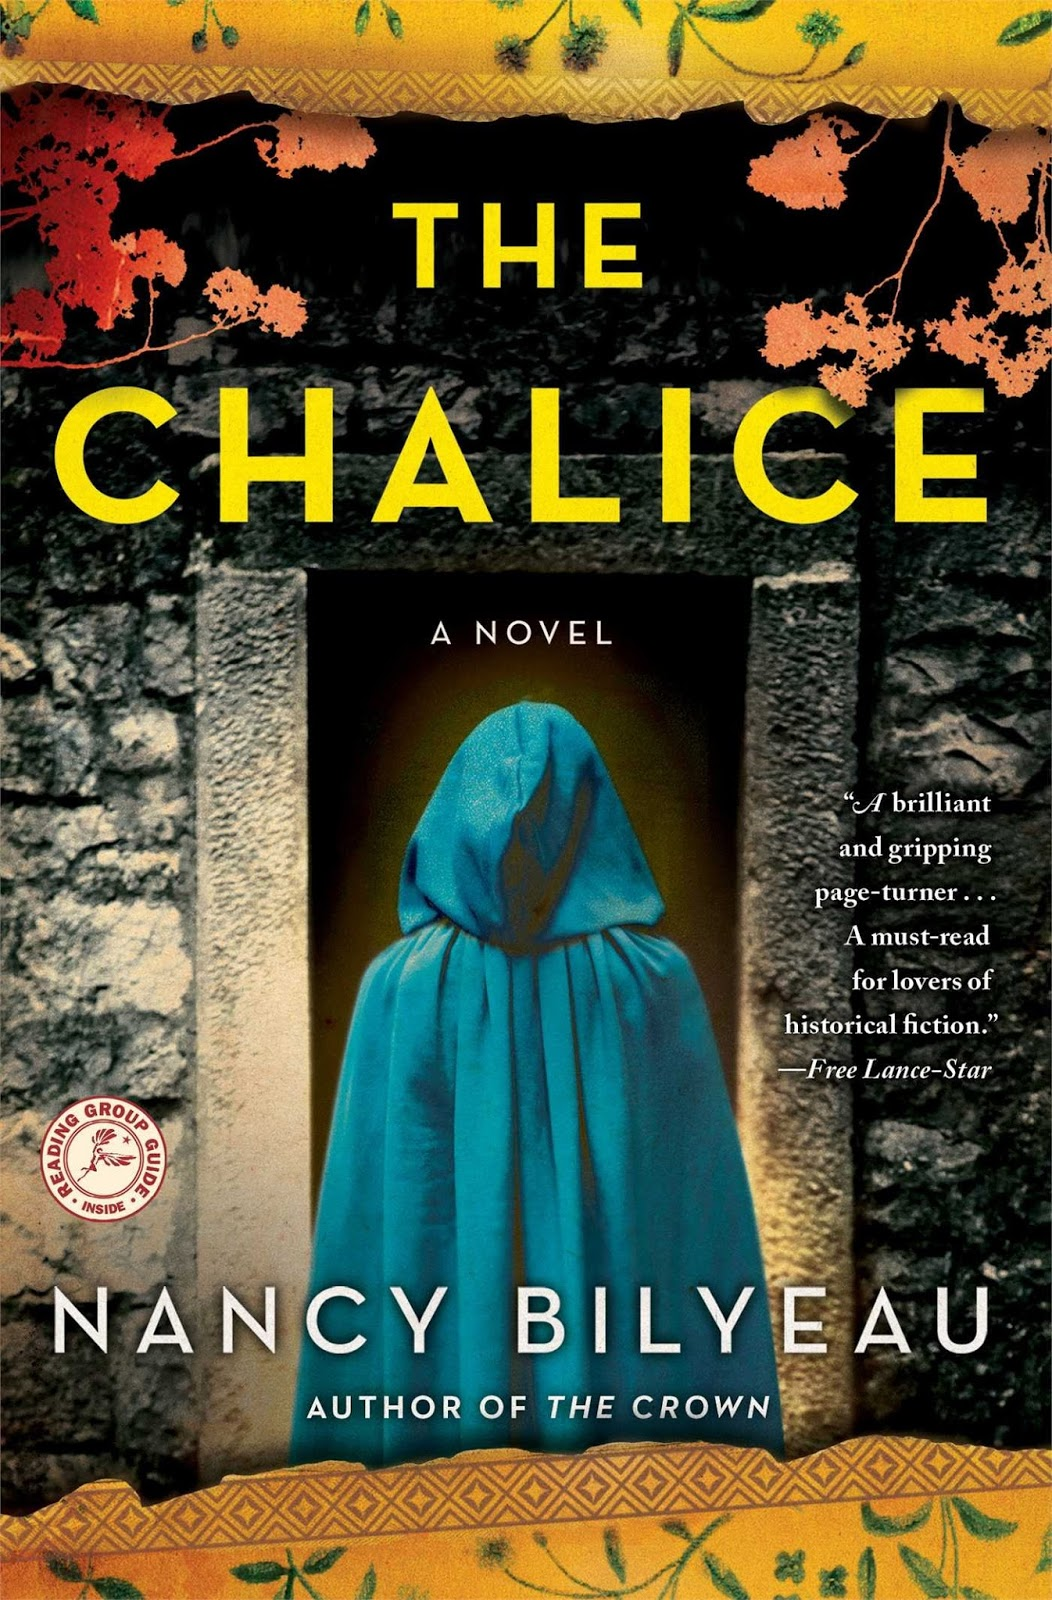 Writing fiction nonfiction set in the past the chalice winner of best historical mystery of the year from rt reviews is discounted to 99 as an ebook for the month of november fandeluxe PDF